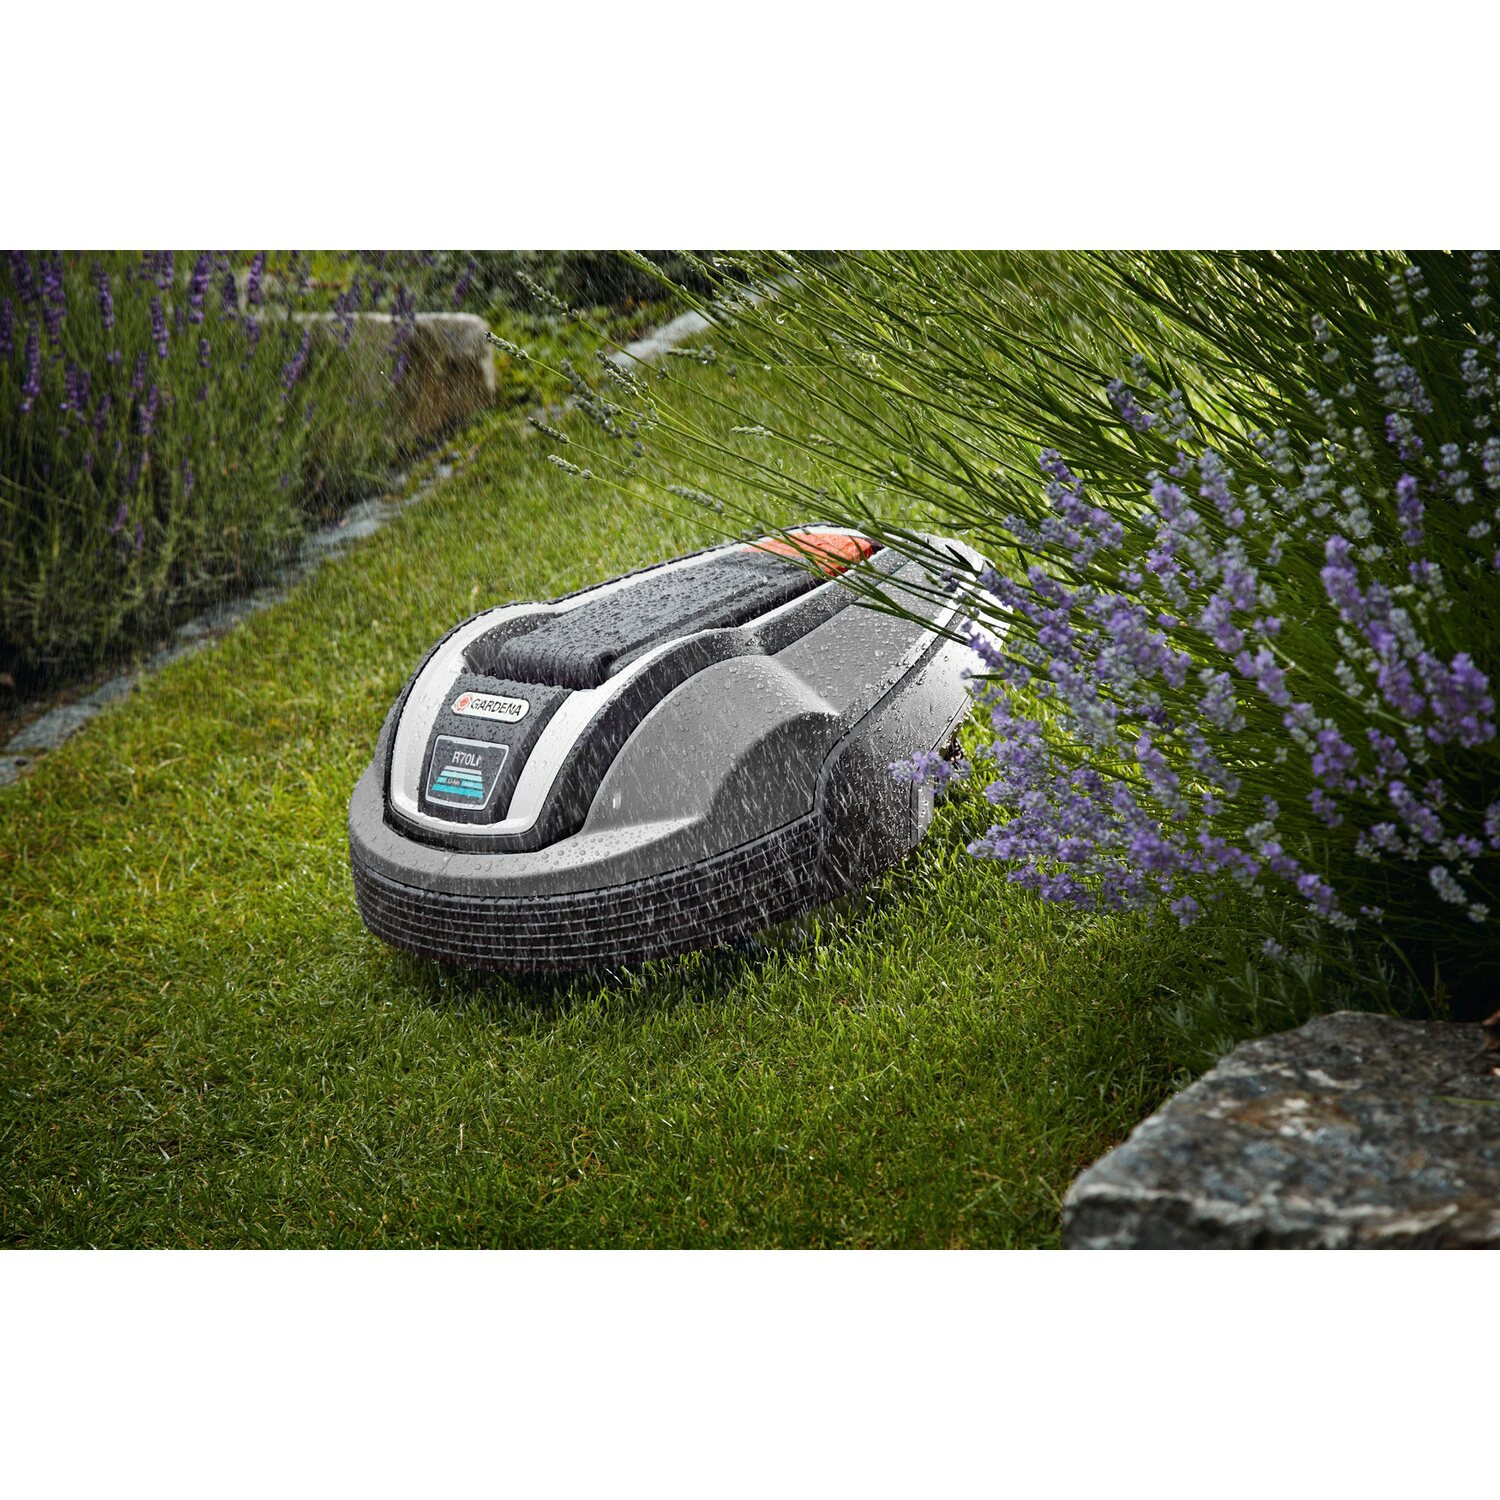 gardena m hroboter r70 li f r fl chen bis 700 m mit mulch. Black Bedroom Furniture Sets. Home Design Ideas